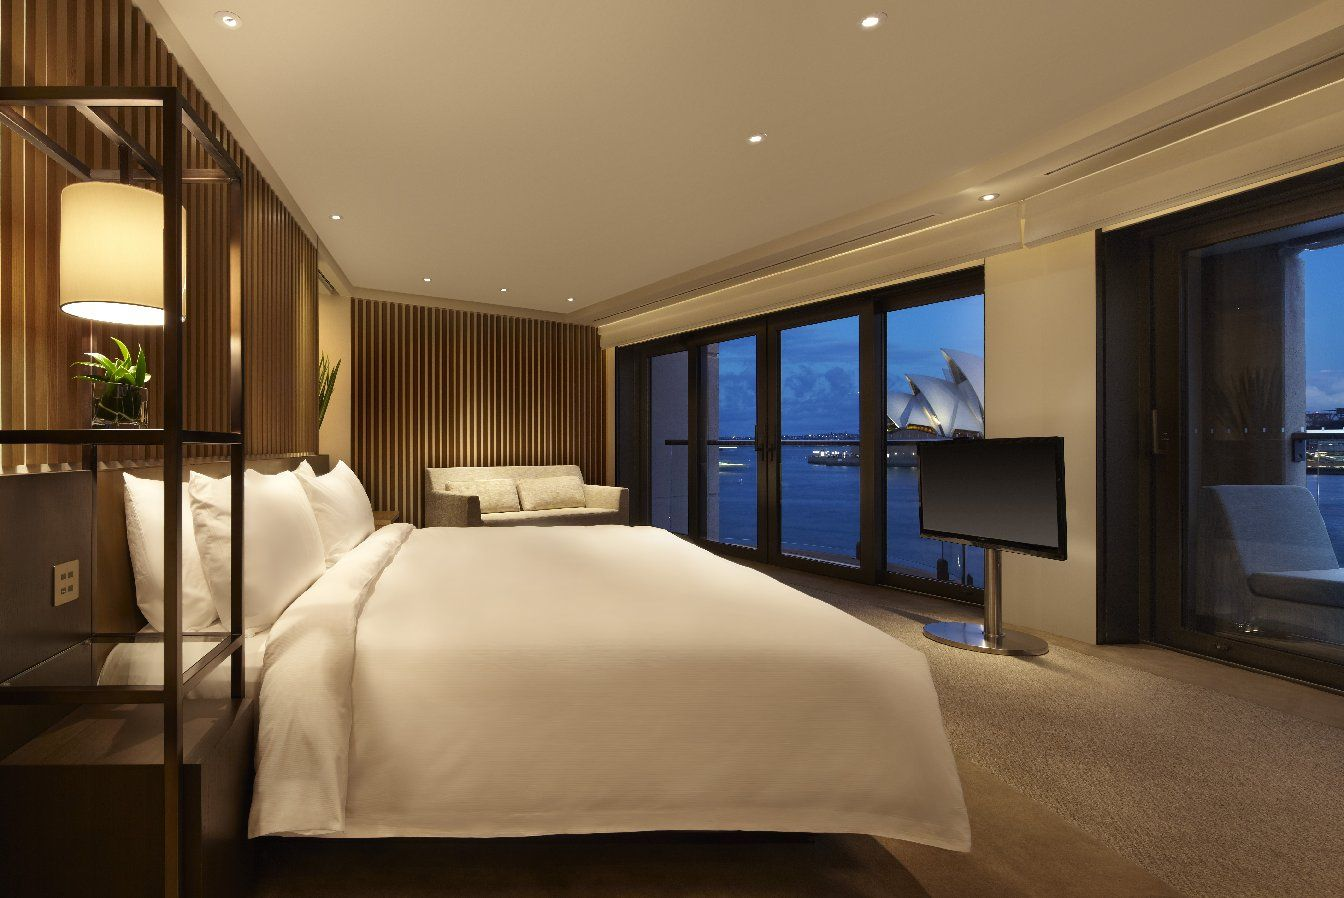 After A Day Trip To Bondi Beach It Would Be Sweet Dreams While Staying At The Park Hyatt Sydney Luxury Travel Vacation Jan Issues Burlison Hotels